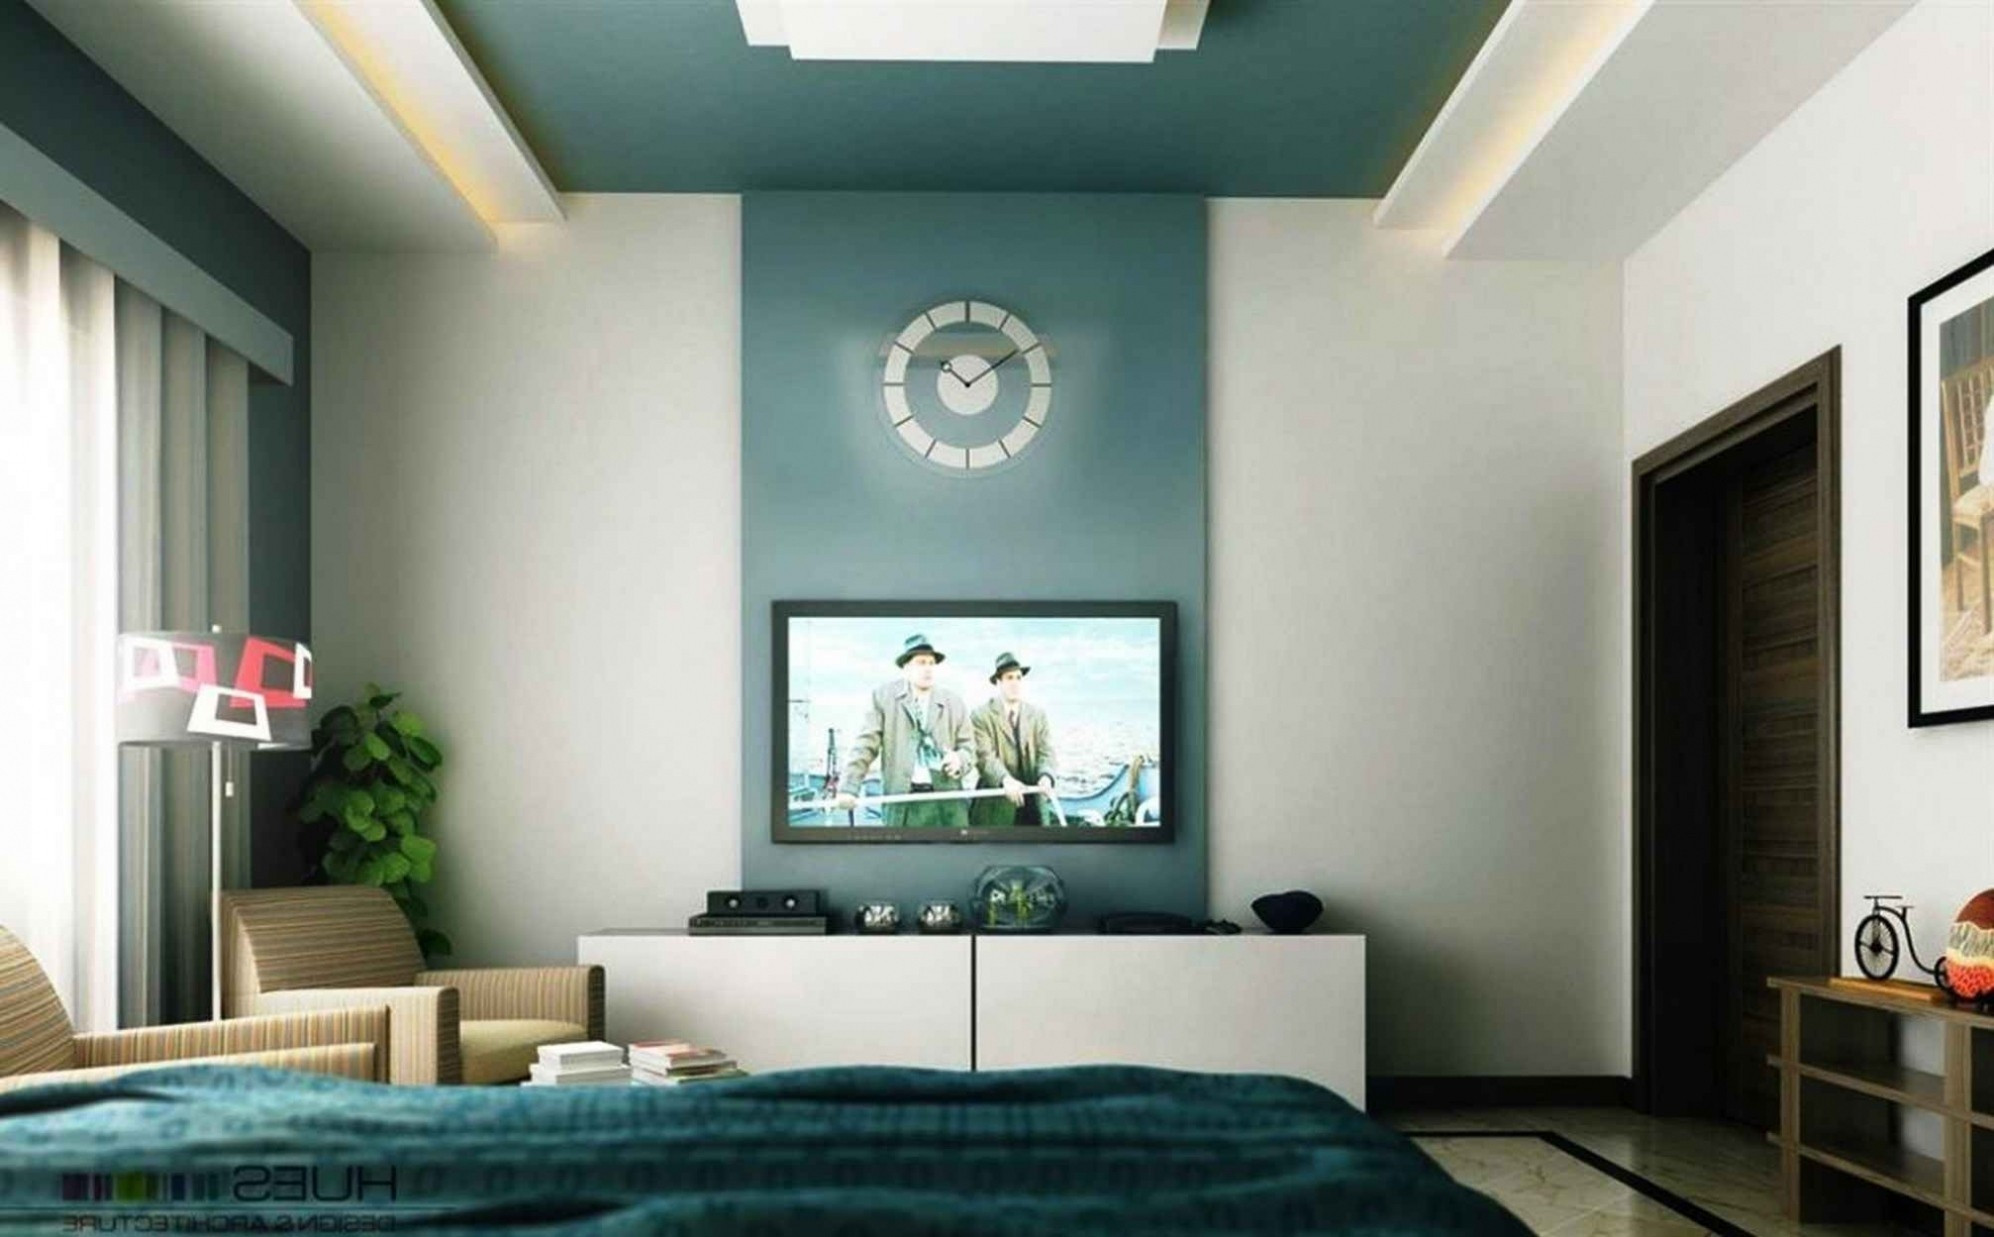 Best ideas about Accent Wall Painting . Save or Pin Bedroom Painting Ideas With Accent Wall Now.